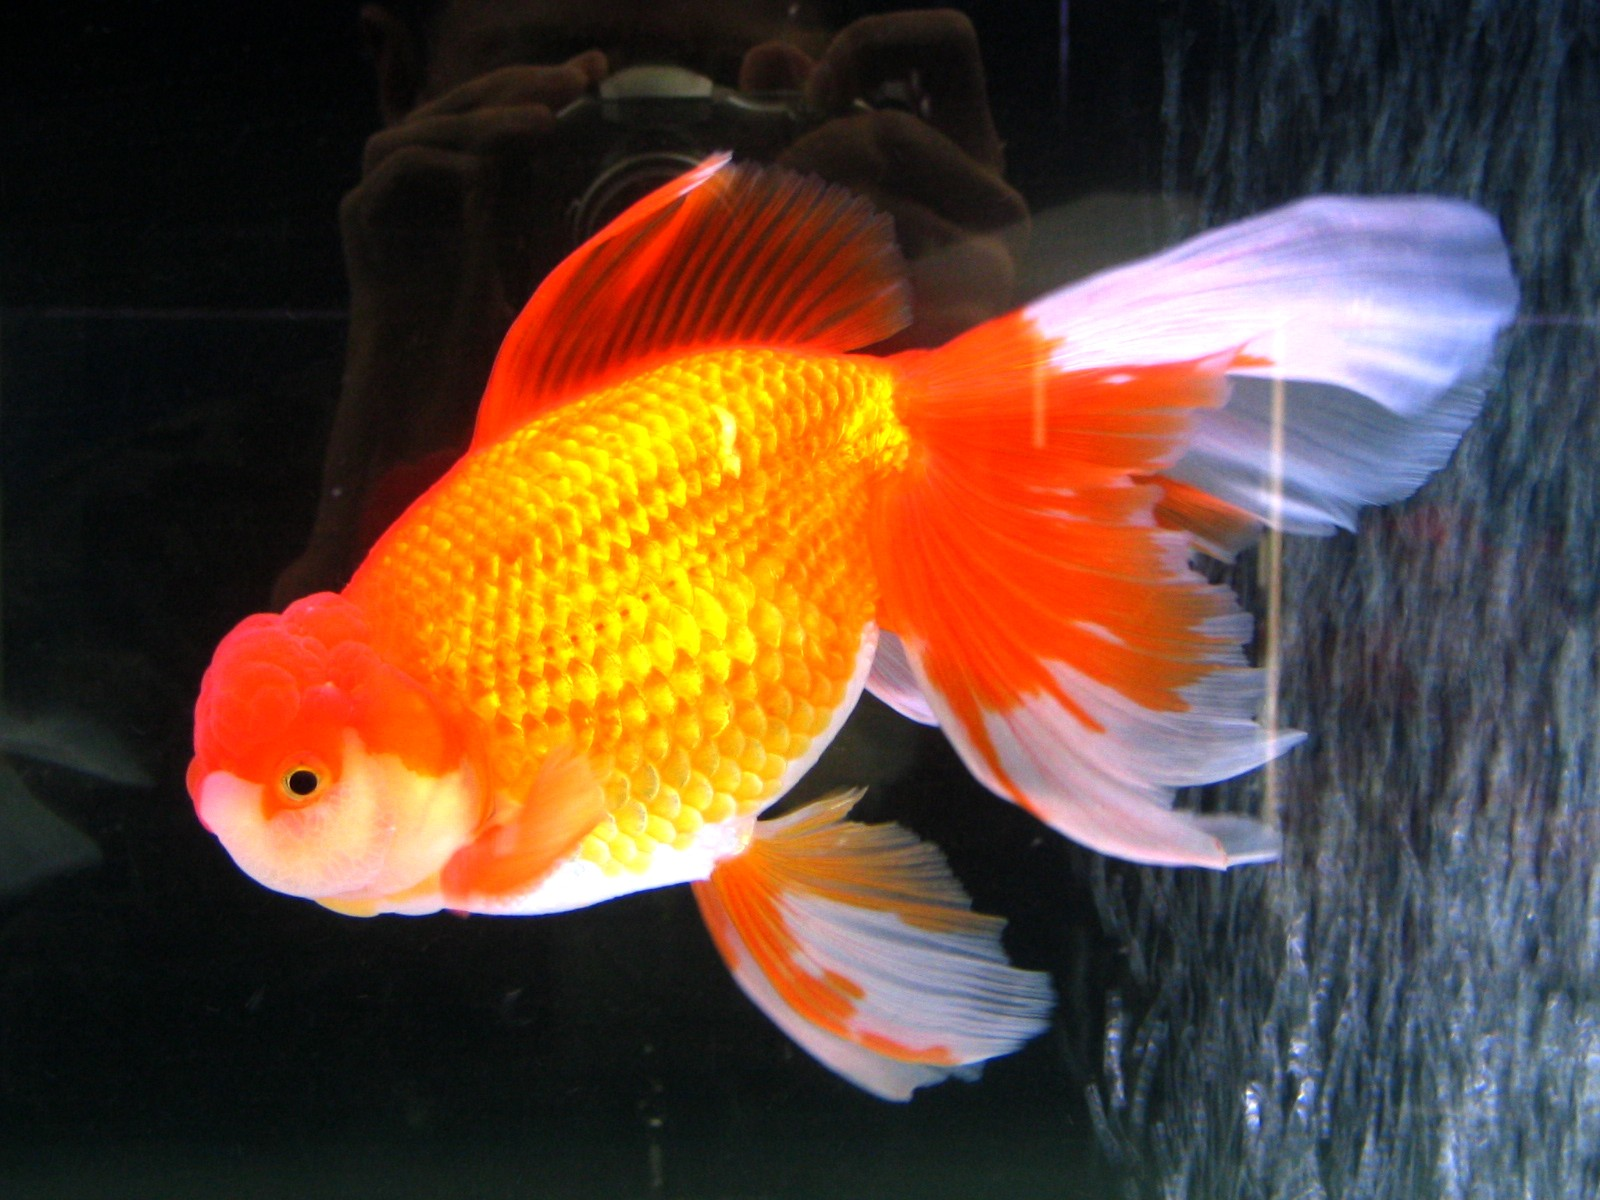 goldfish and water temperature Wwwfrontiersinphysorg the effects of water temperature change on goldfish  physiology and behavior melinda pittis 1999 frontiers in physiology research .